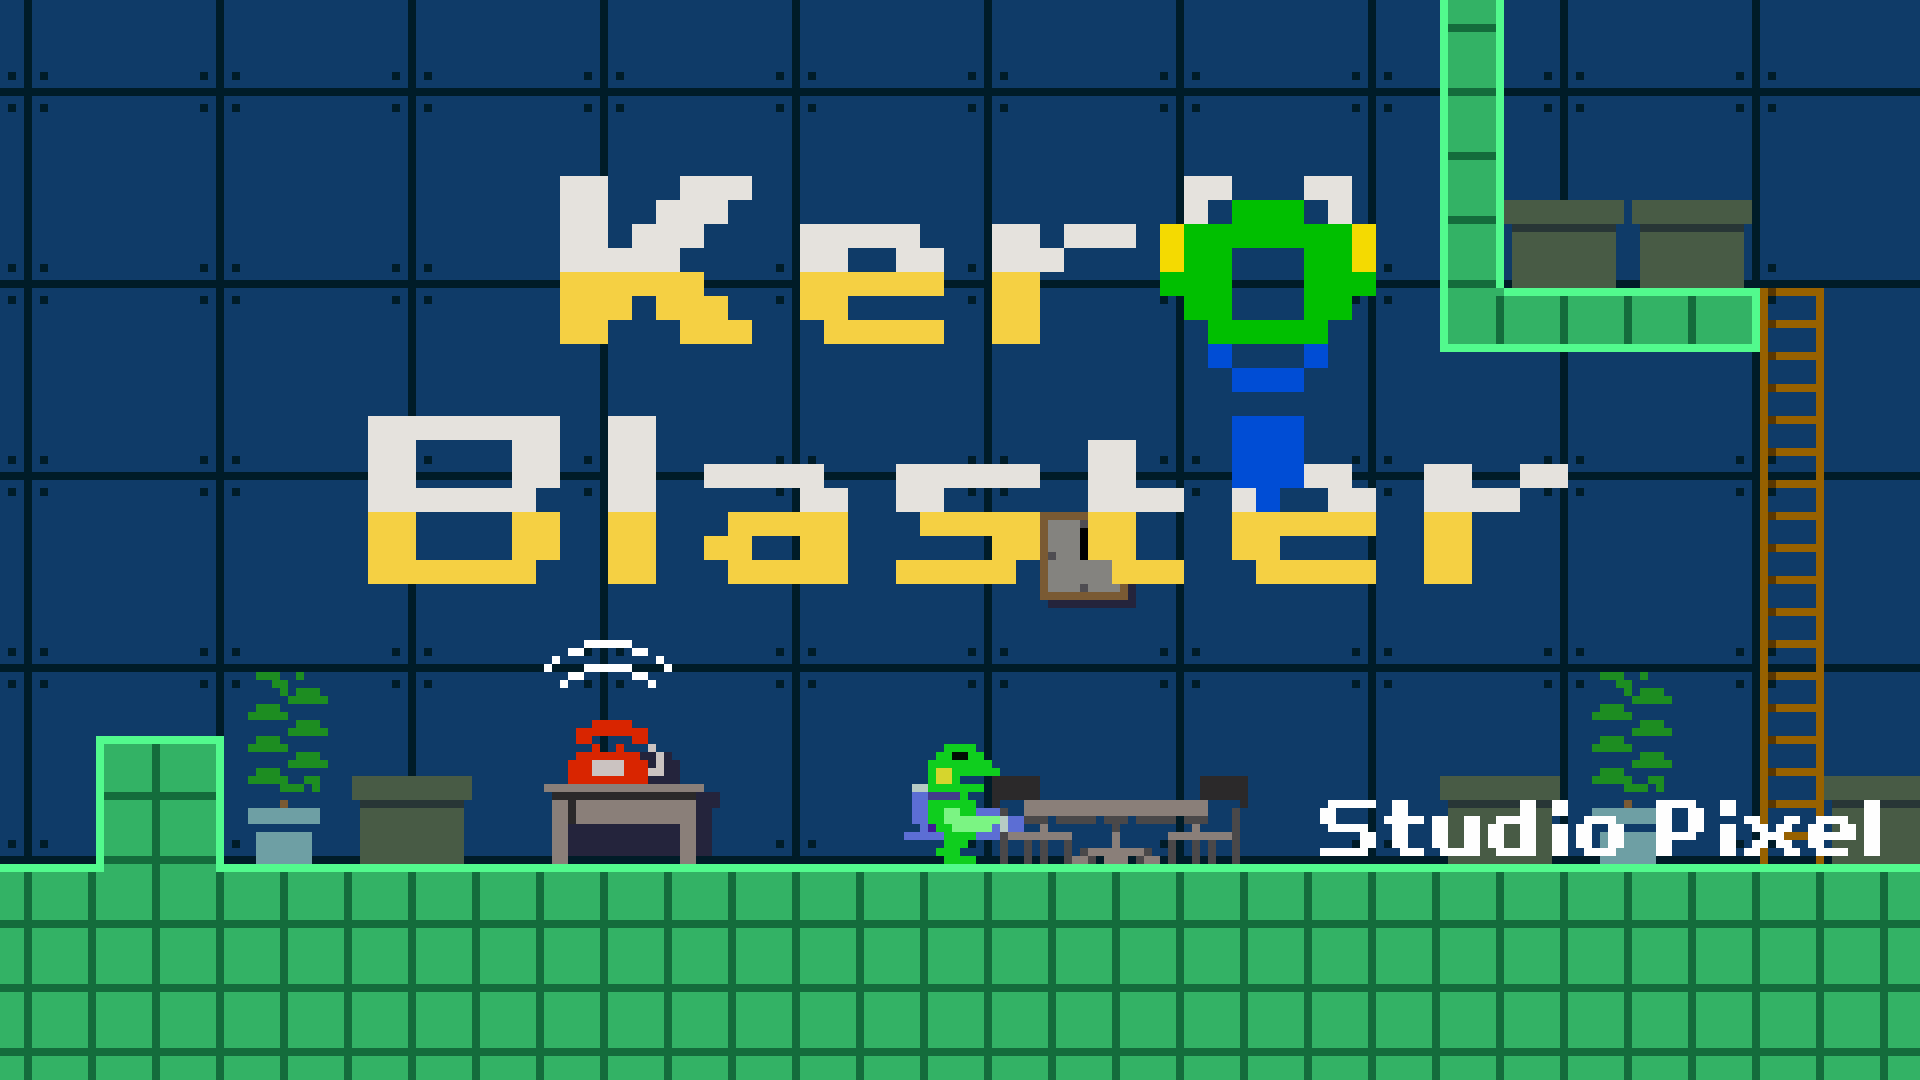 1920x1080 Cave Story! Now that I've got your attention, play Kero Blaster | Retronauts